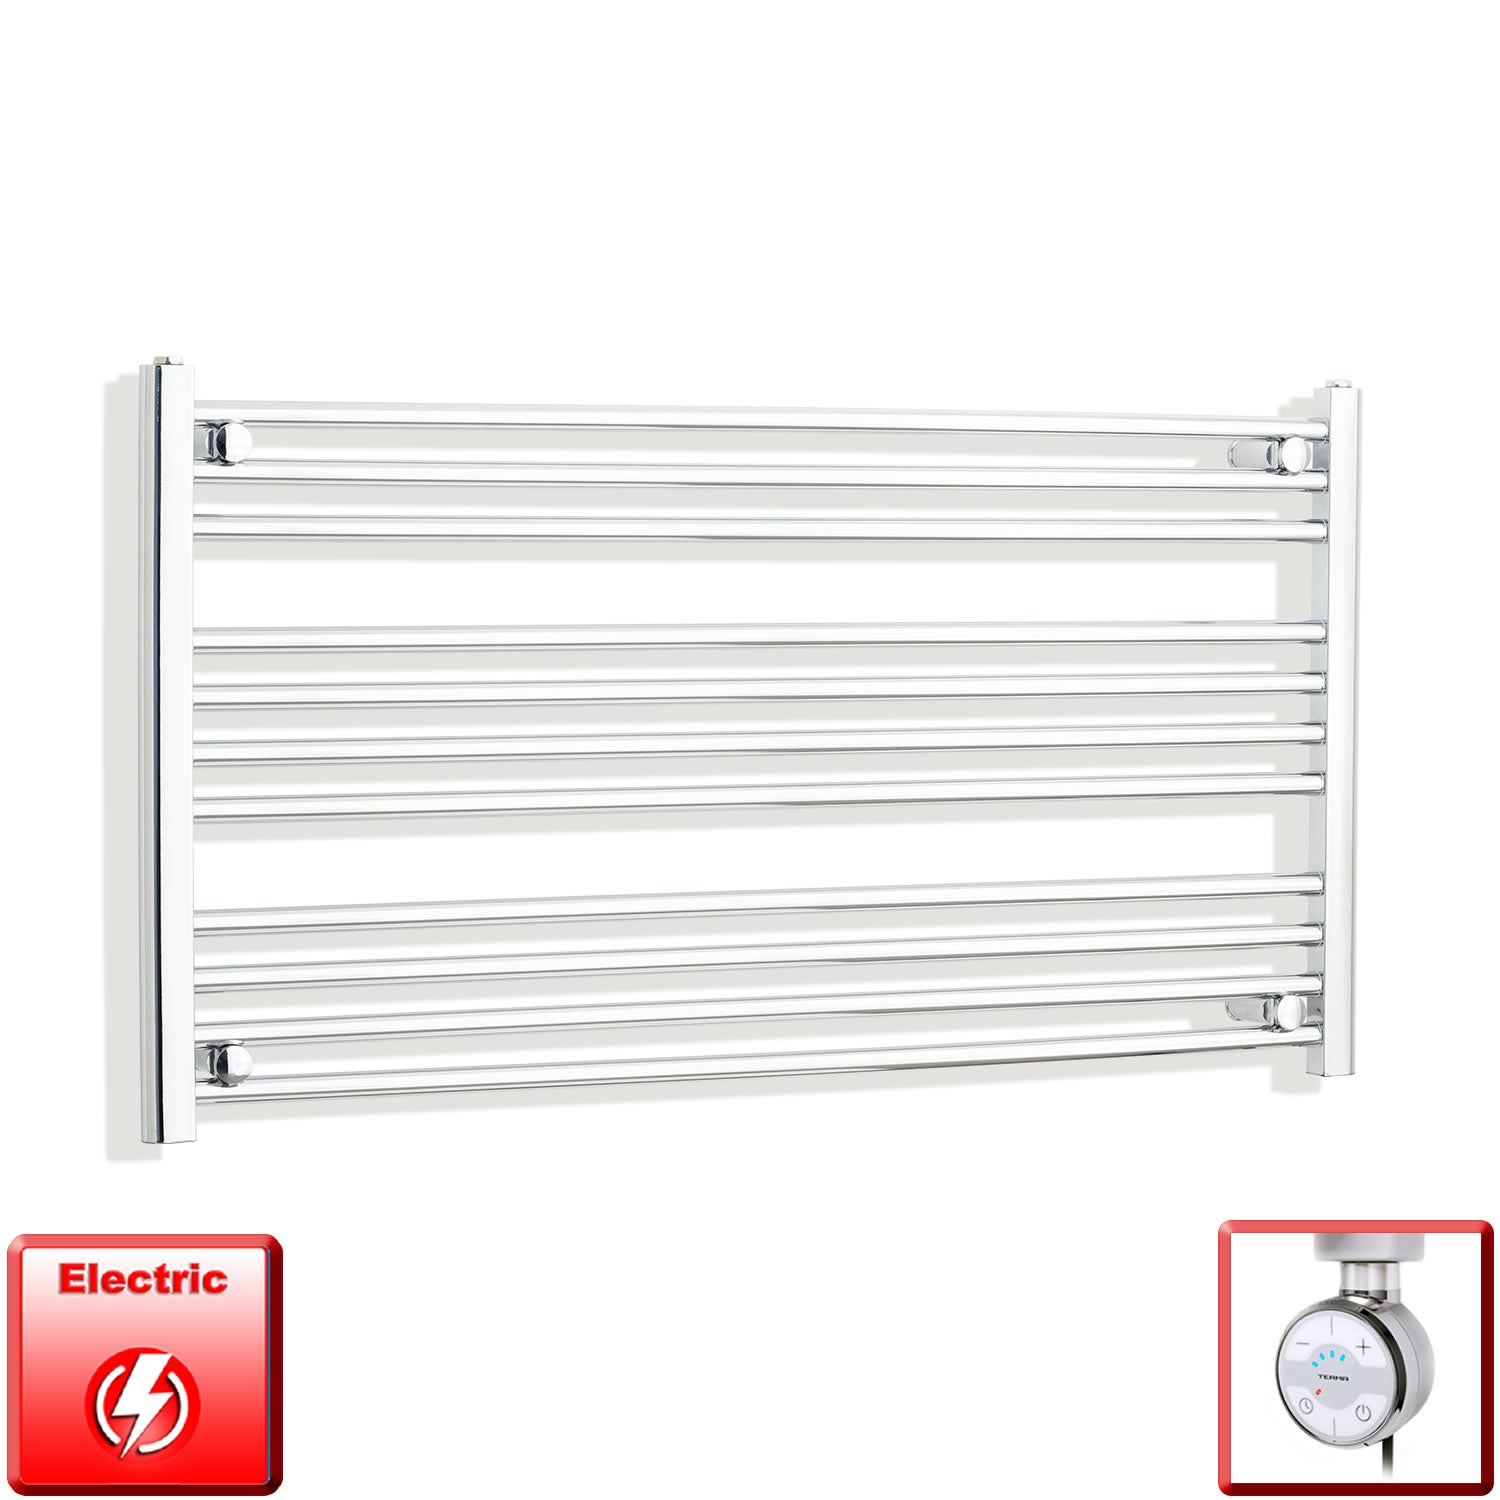 1200mm Wide 600mm High Flat Chrome Pre-Filled Electric Heated Towel Rail Radiator HTR,MOA Thermostatic Element